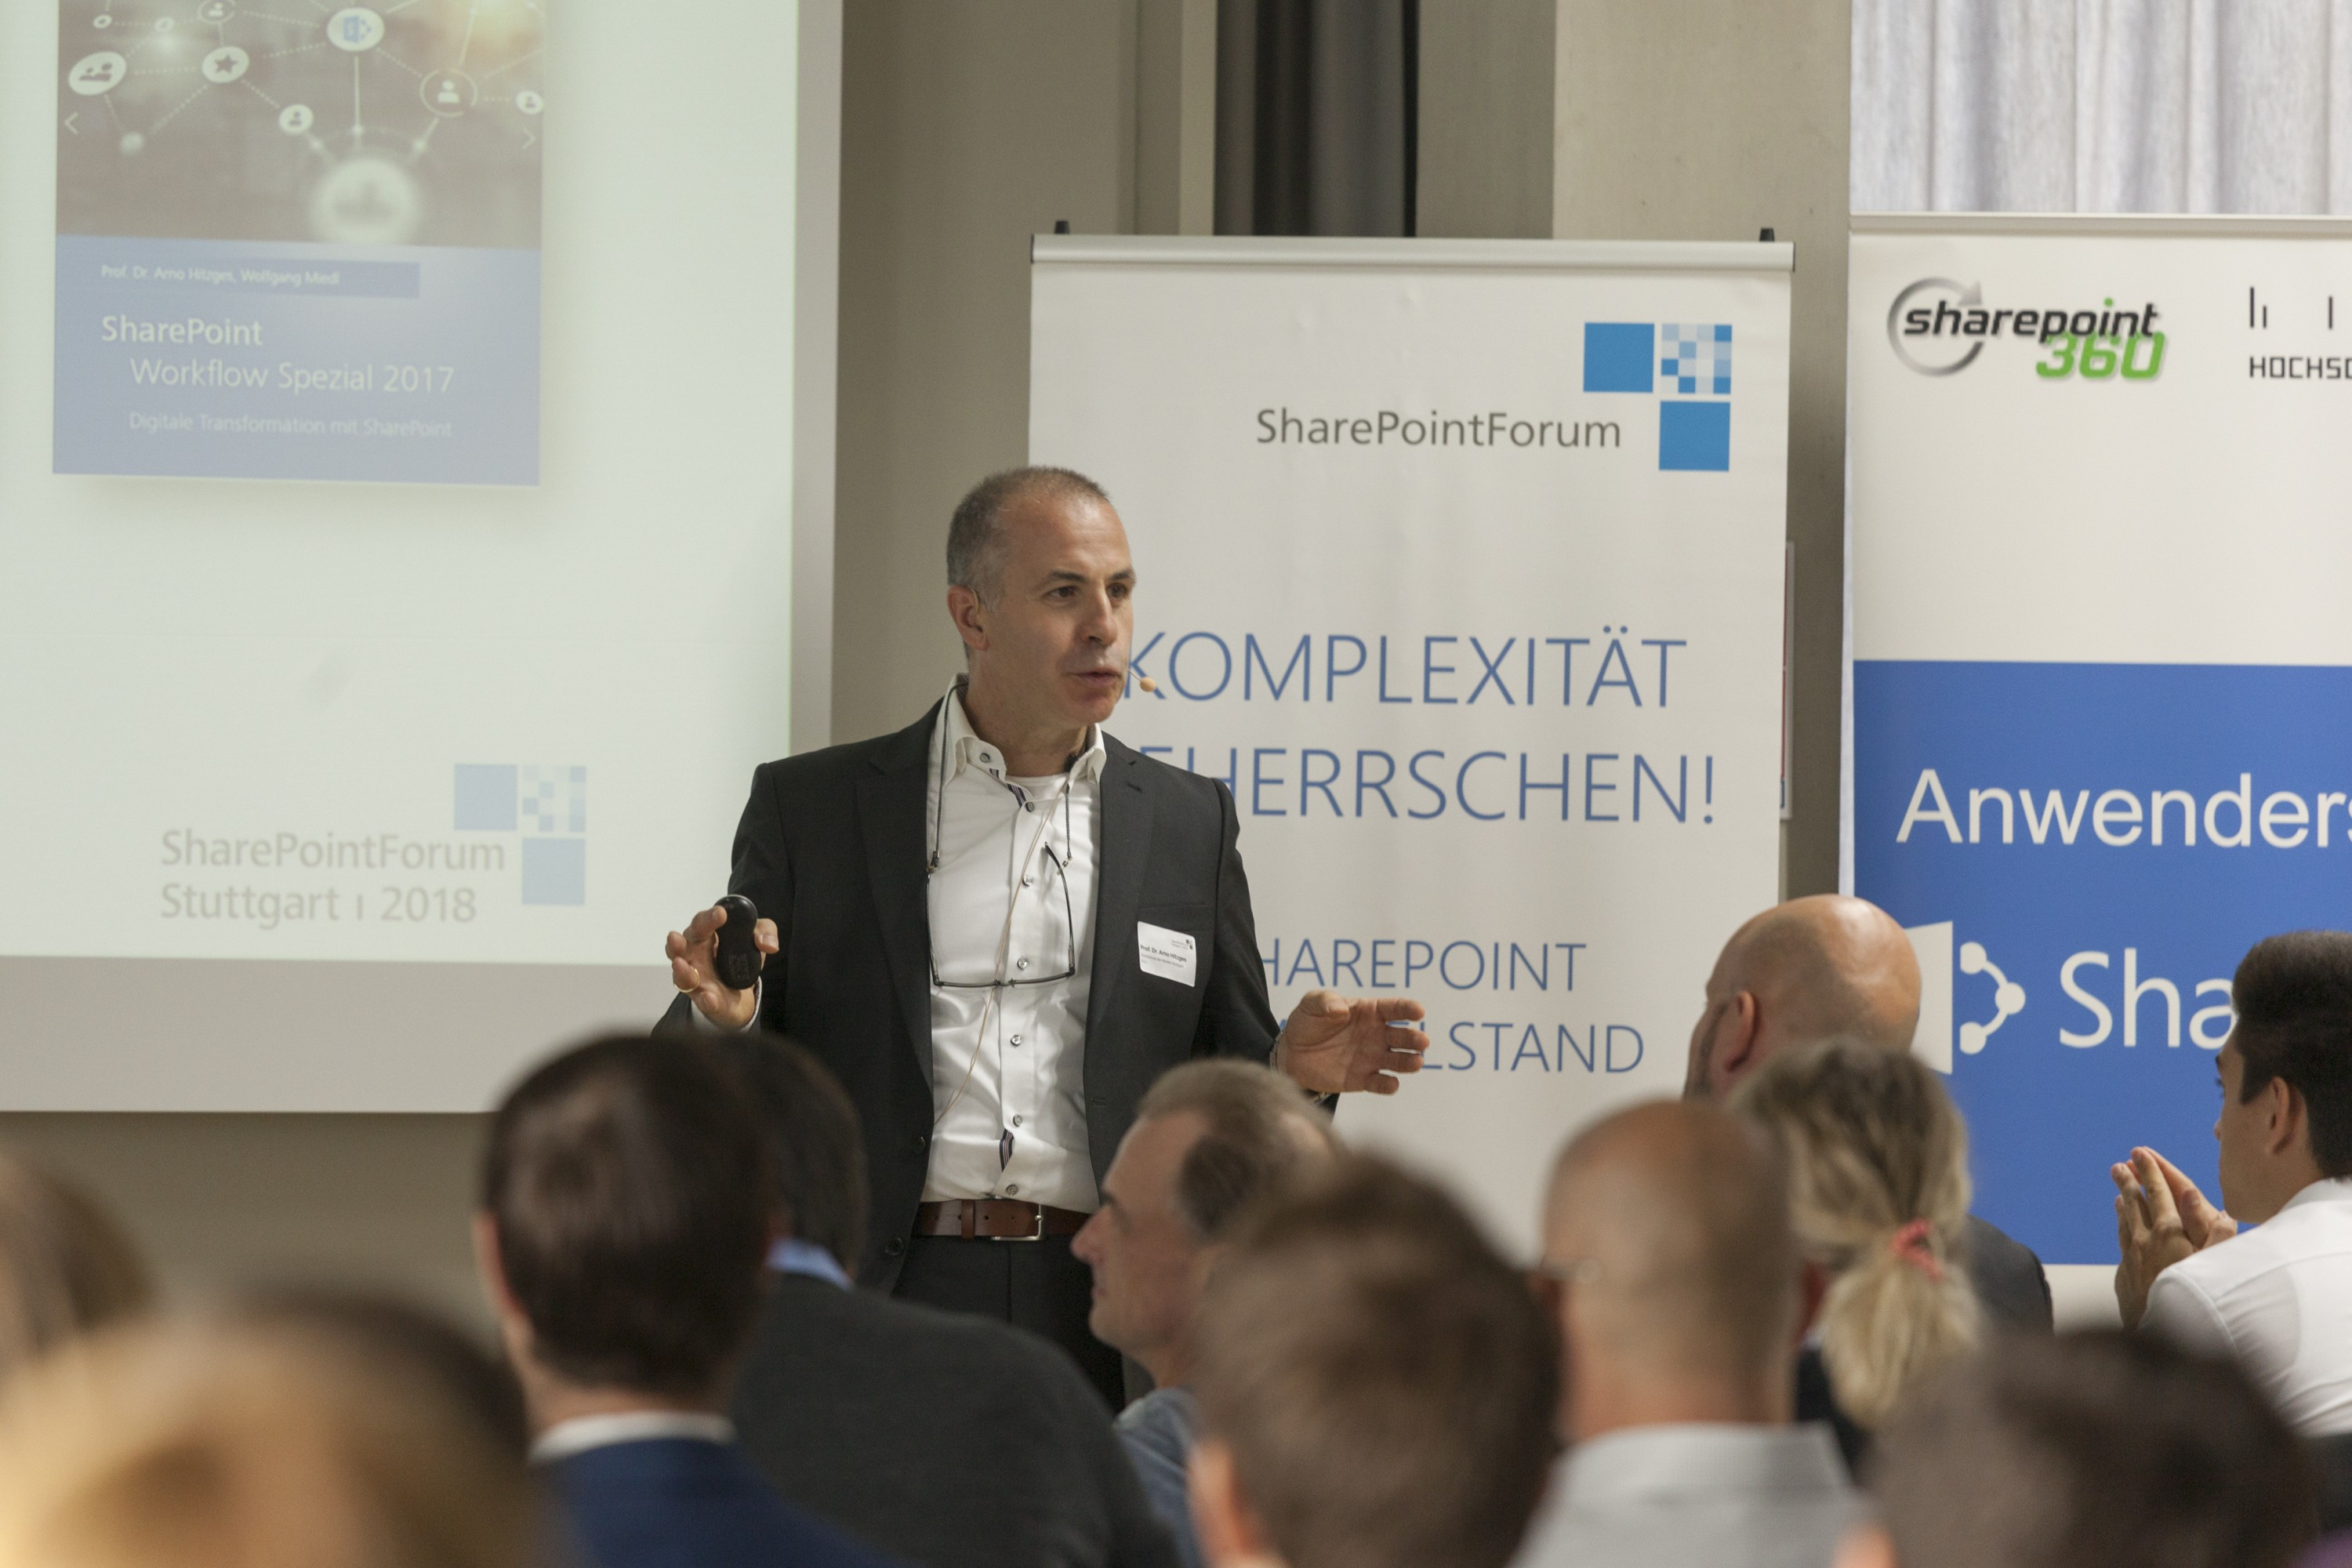 SharePoint Forum Stuttgart 2018 (12)